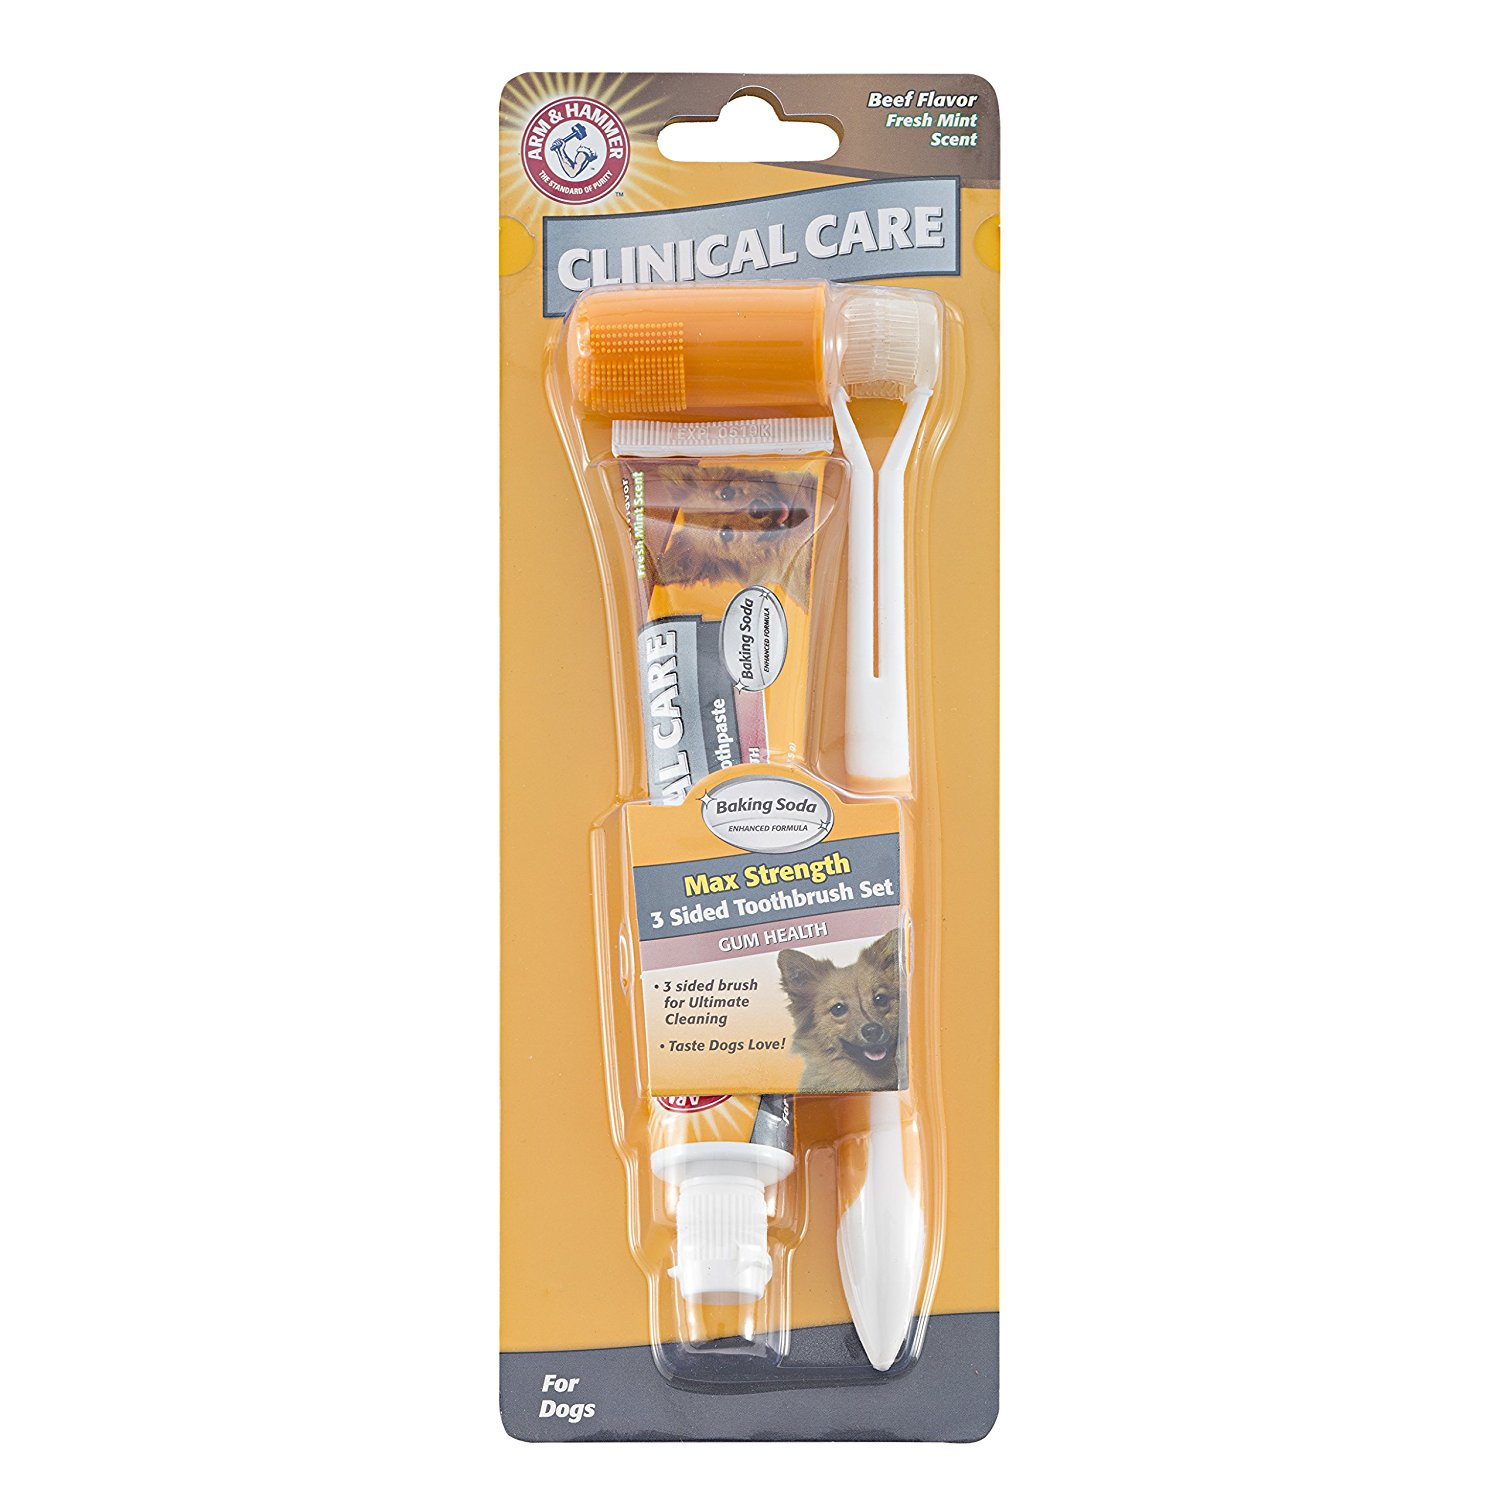 Clinical Care Three‐Sided Toothbrush & Toothpaste Set in Beef Flavor